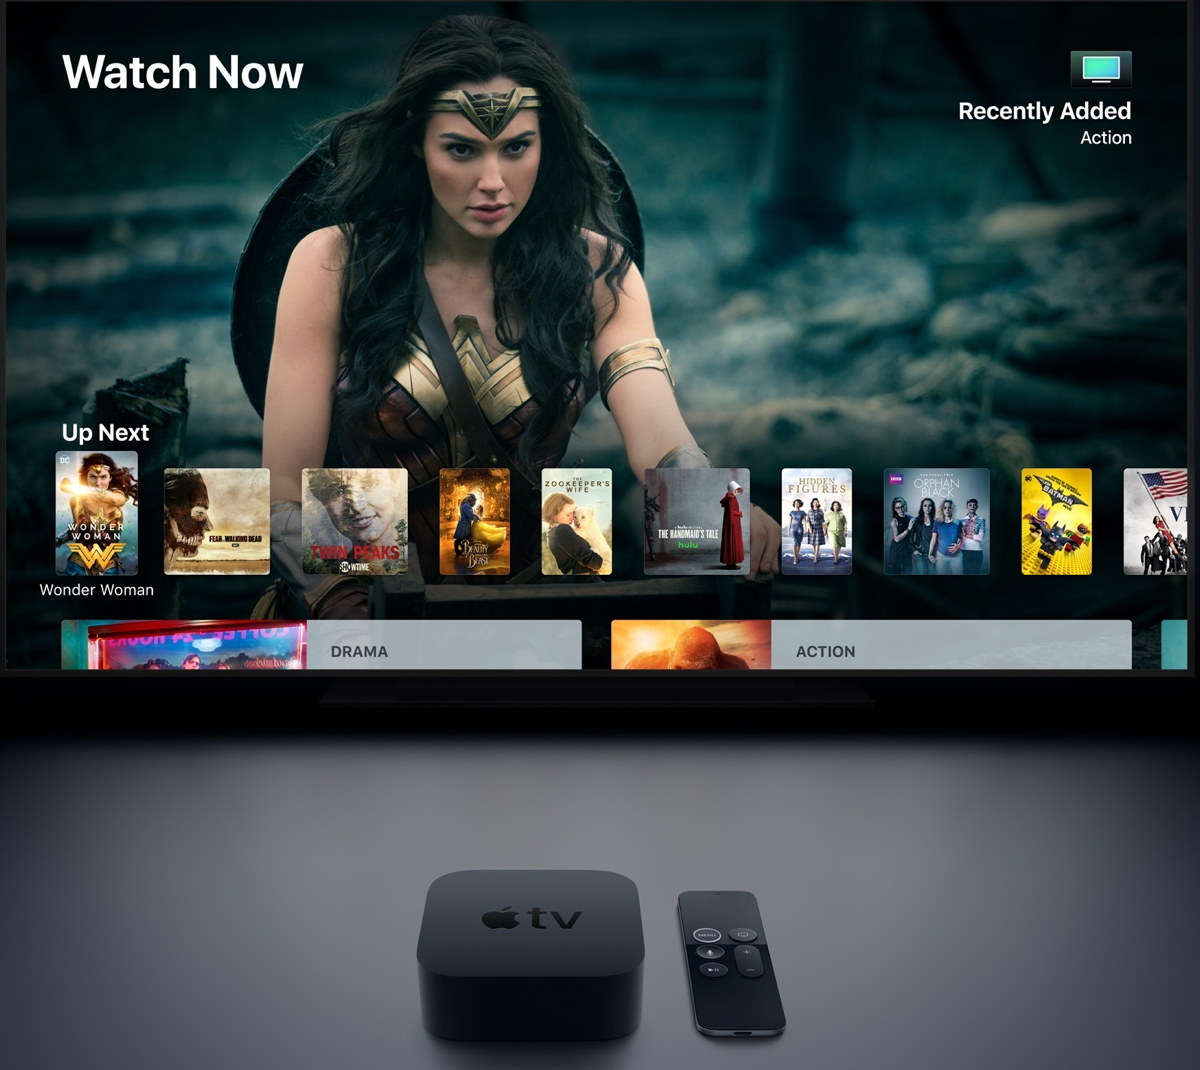 Apple TV's share of streaming device viewing hours up 129% in quarter two